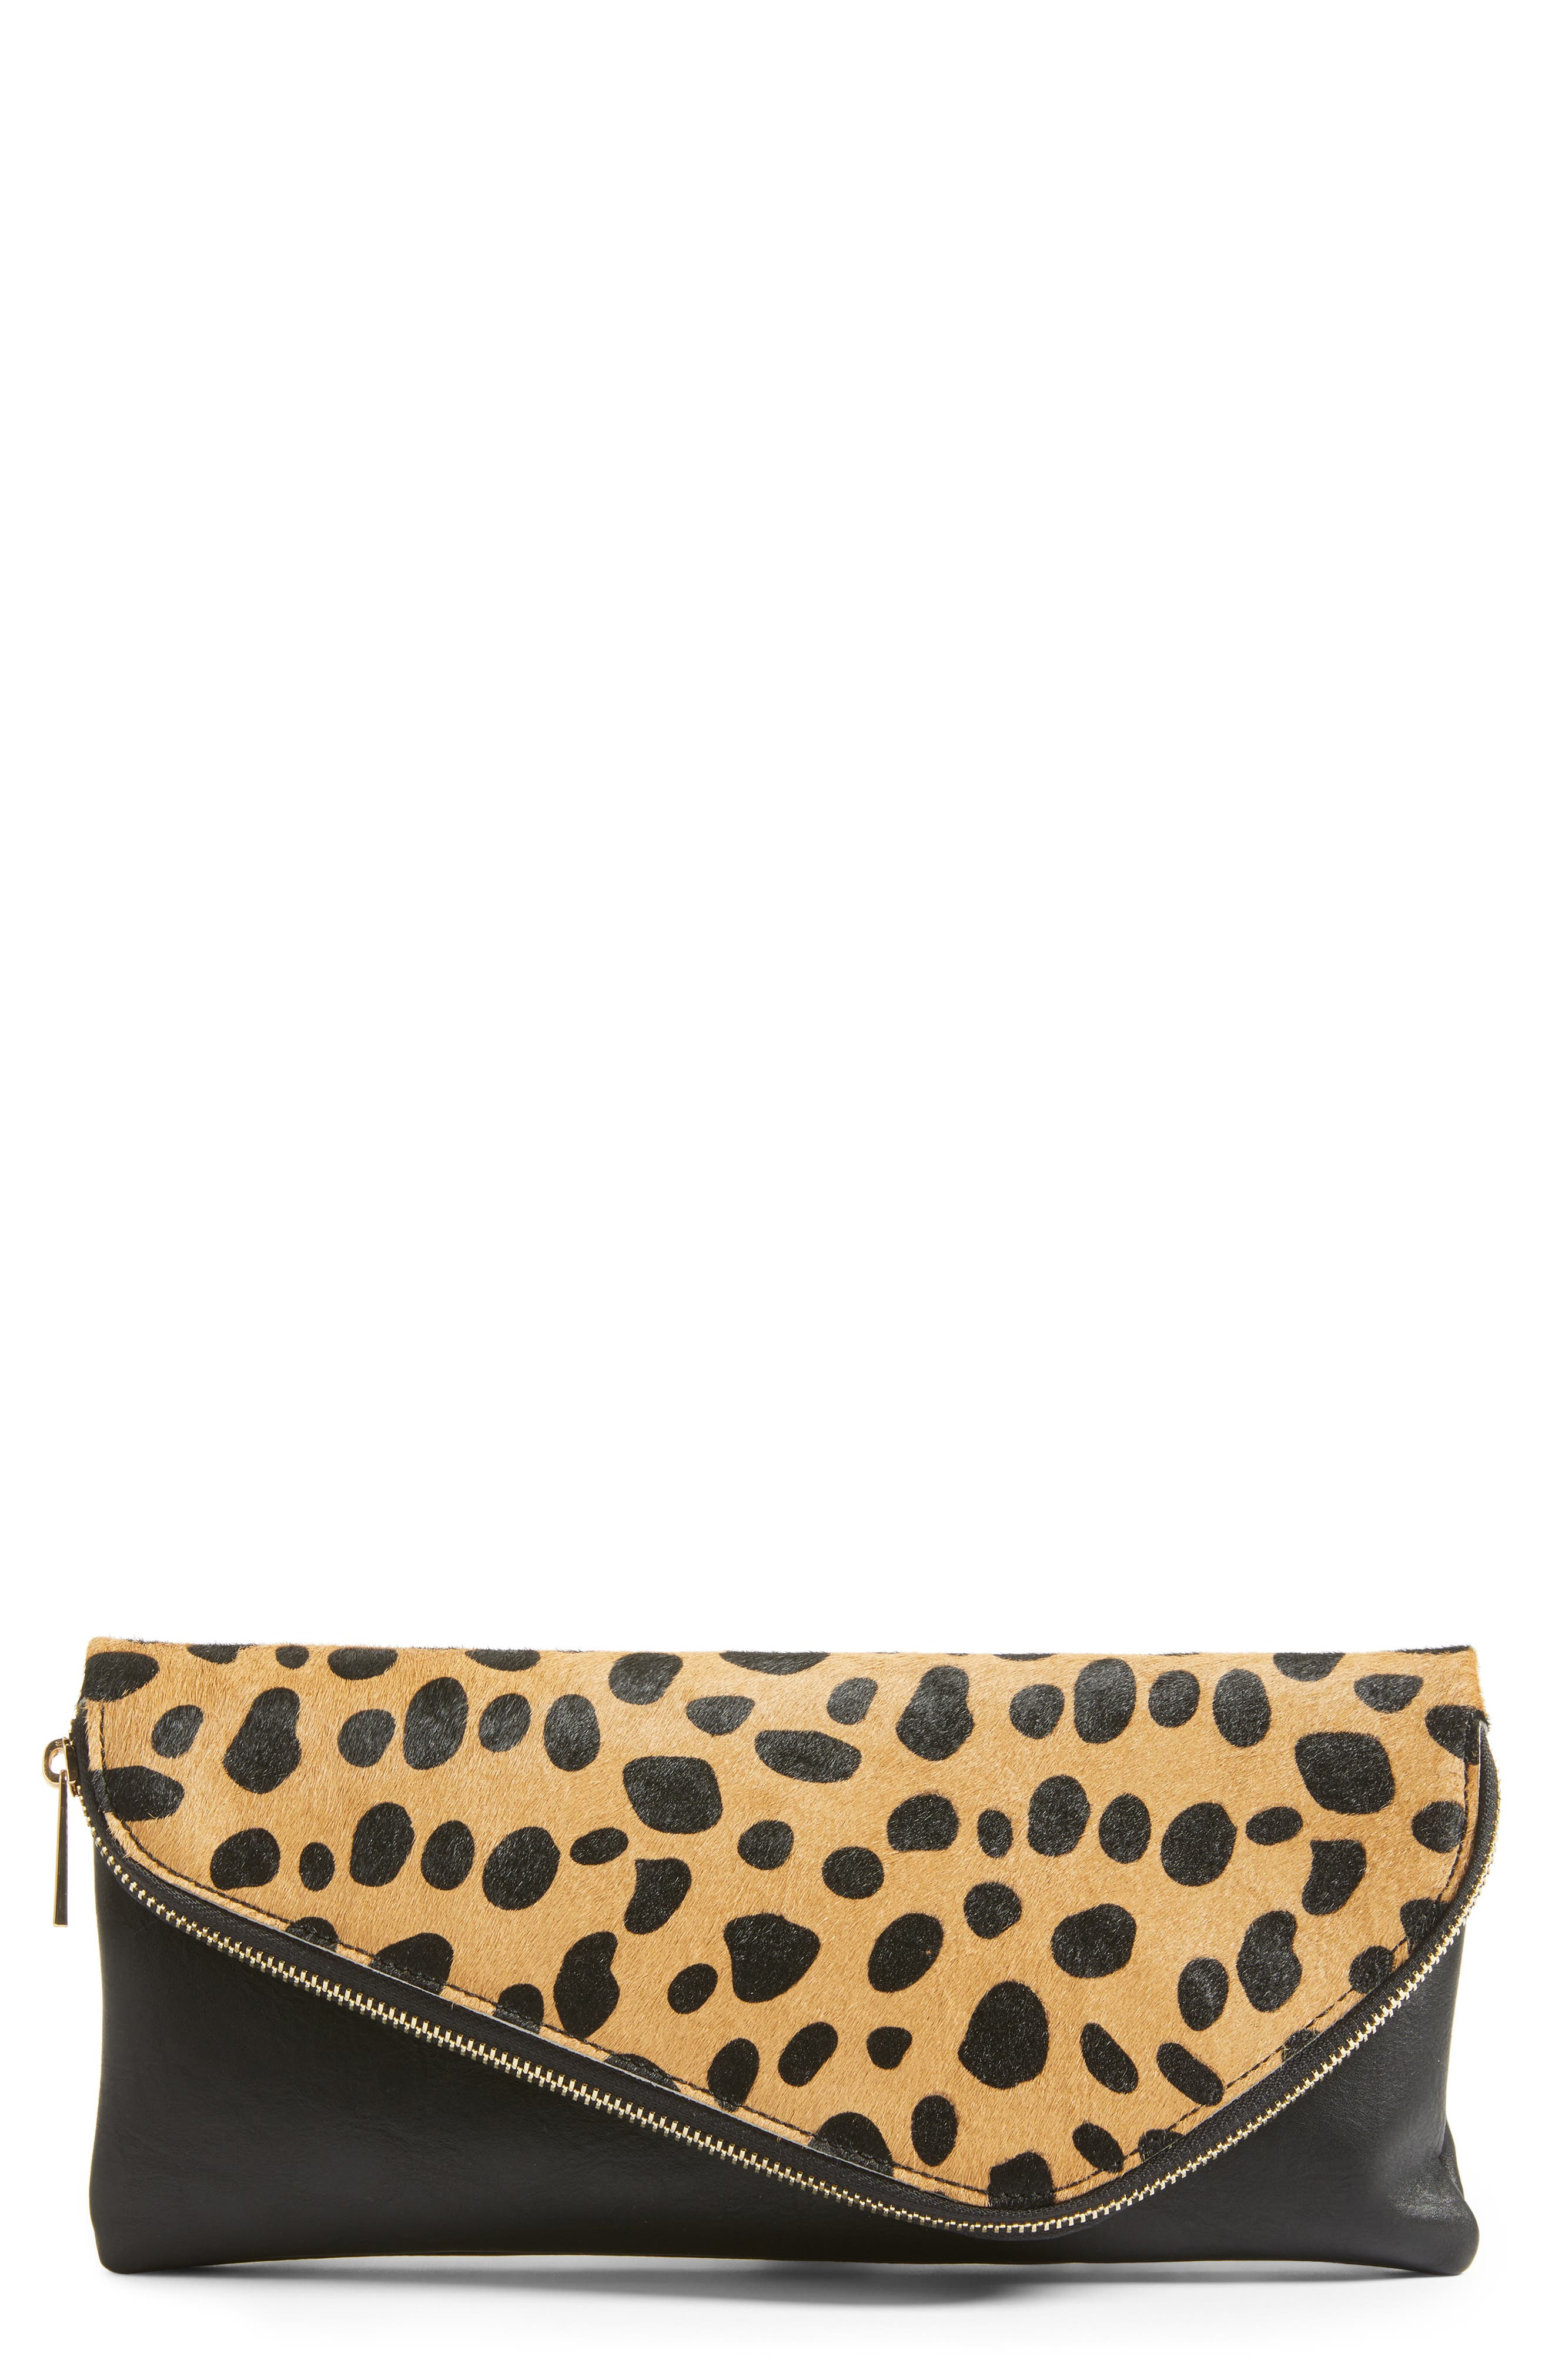 Sole Society Tamika Genuine Calf Hair & Faux Leather Foldover Clutch